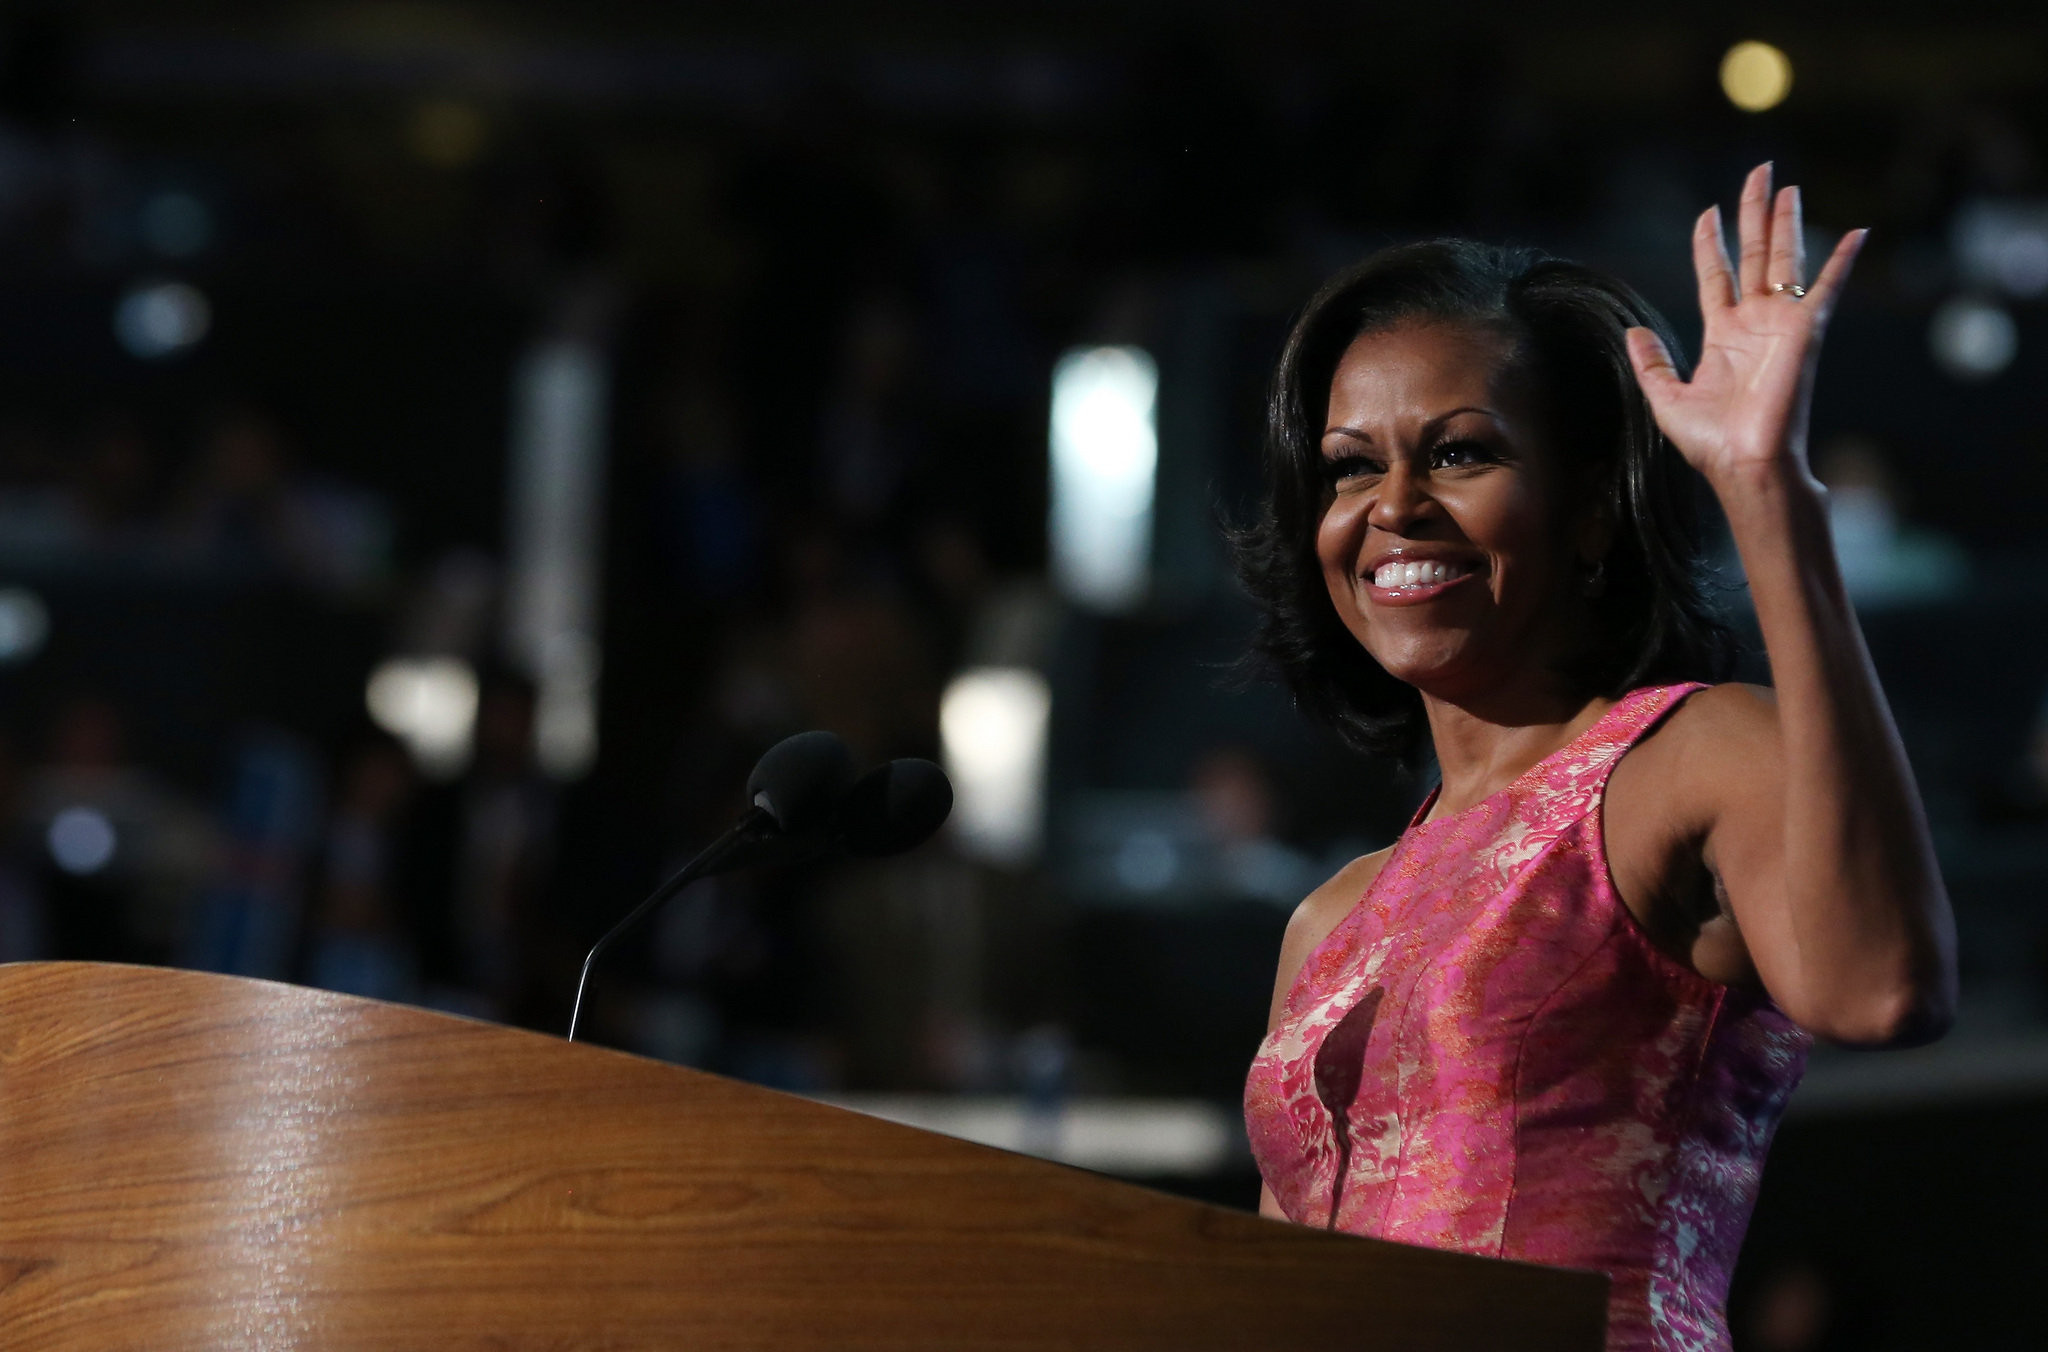 2048x1352 Michelle Obama Wallpaper 6 - 2048 X 1352